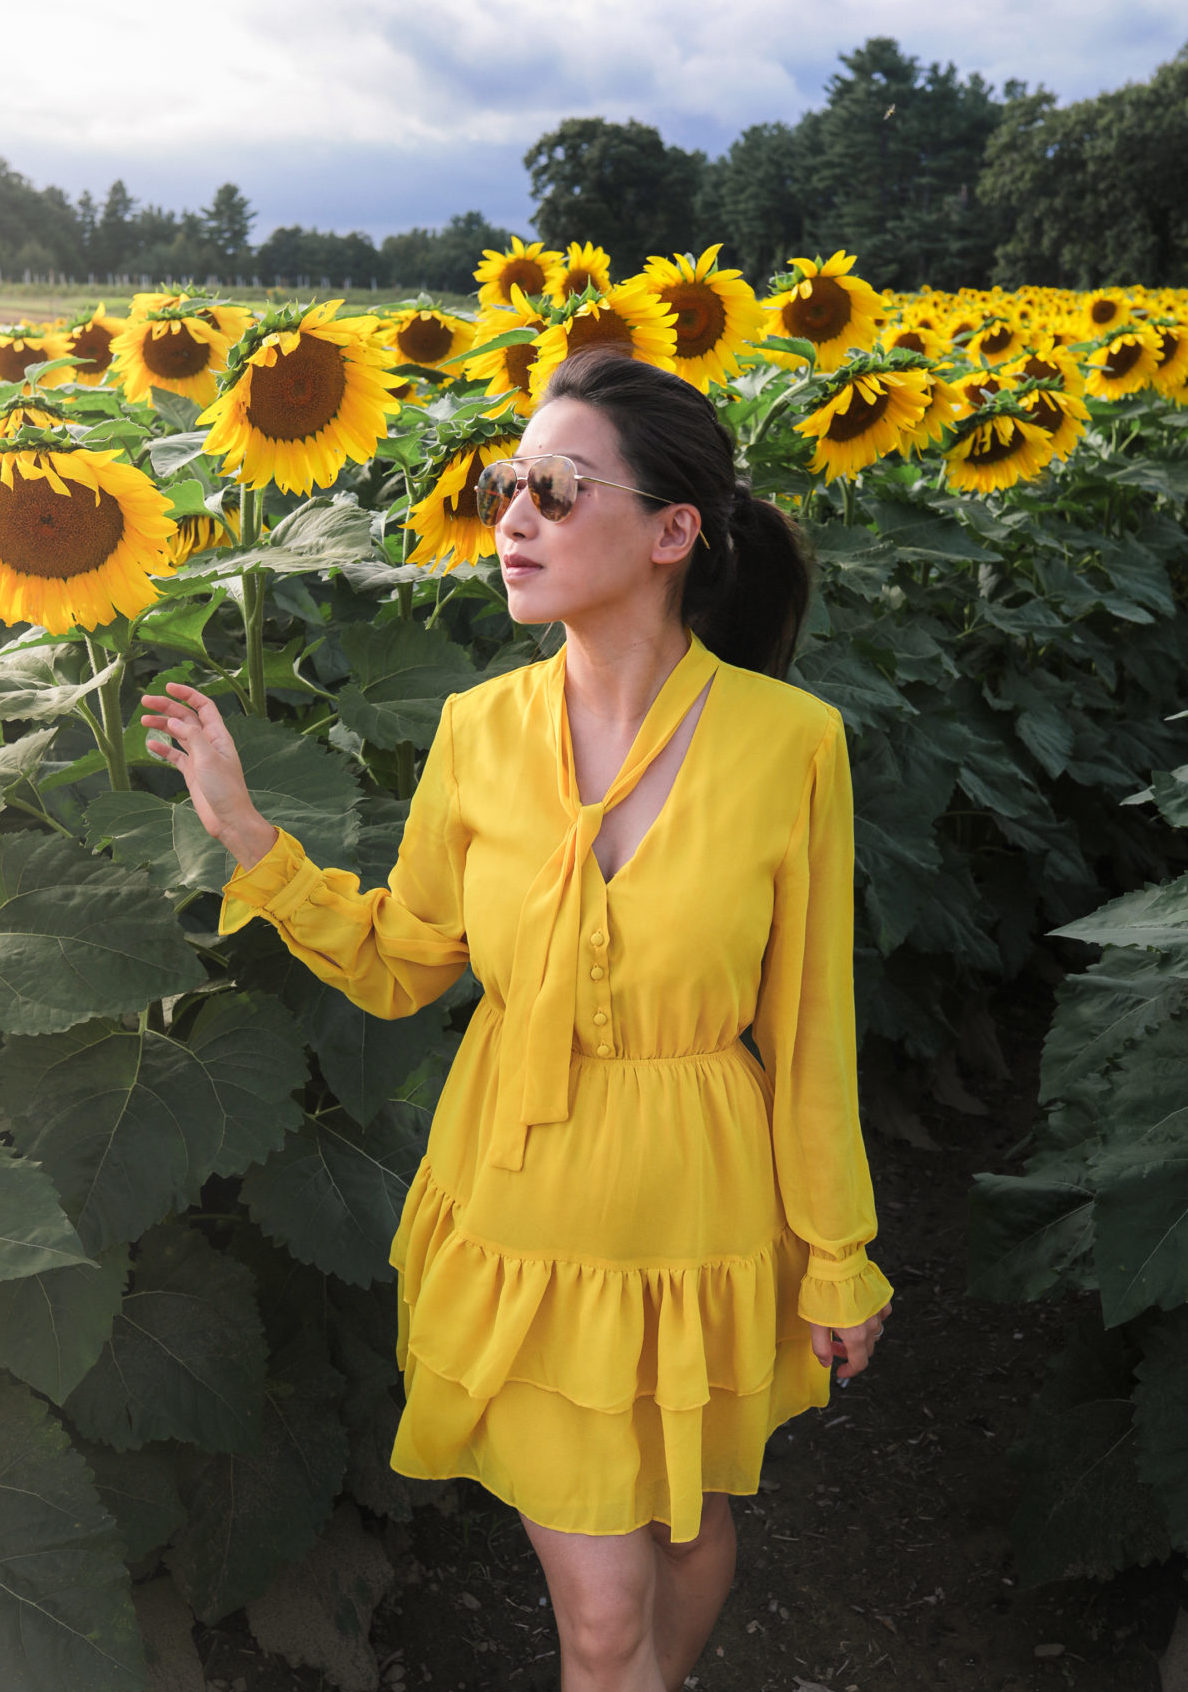 parlee farms sunflower field yellow dress